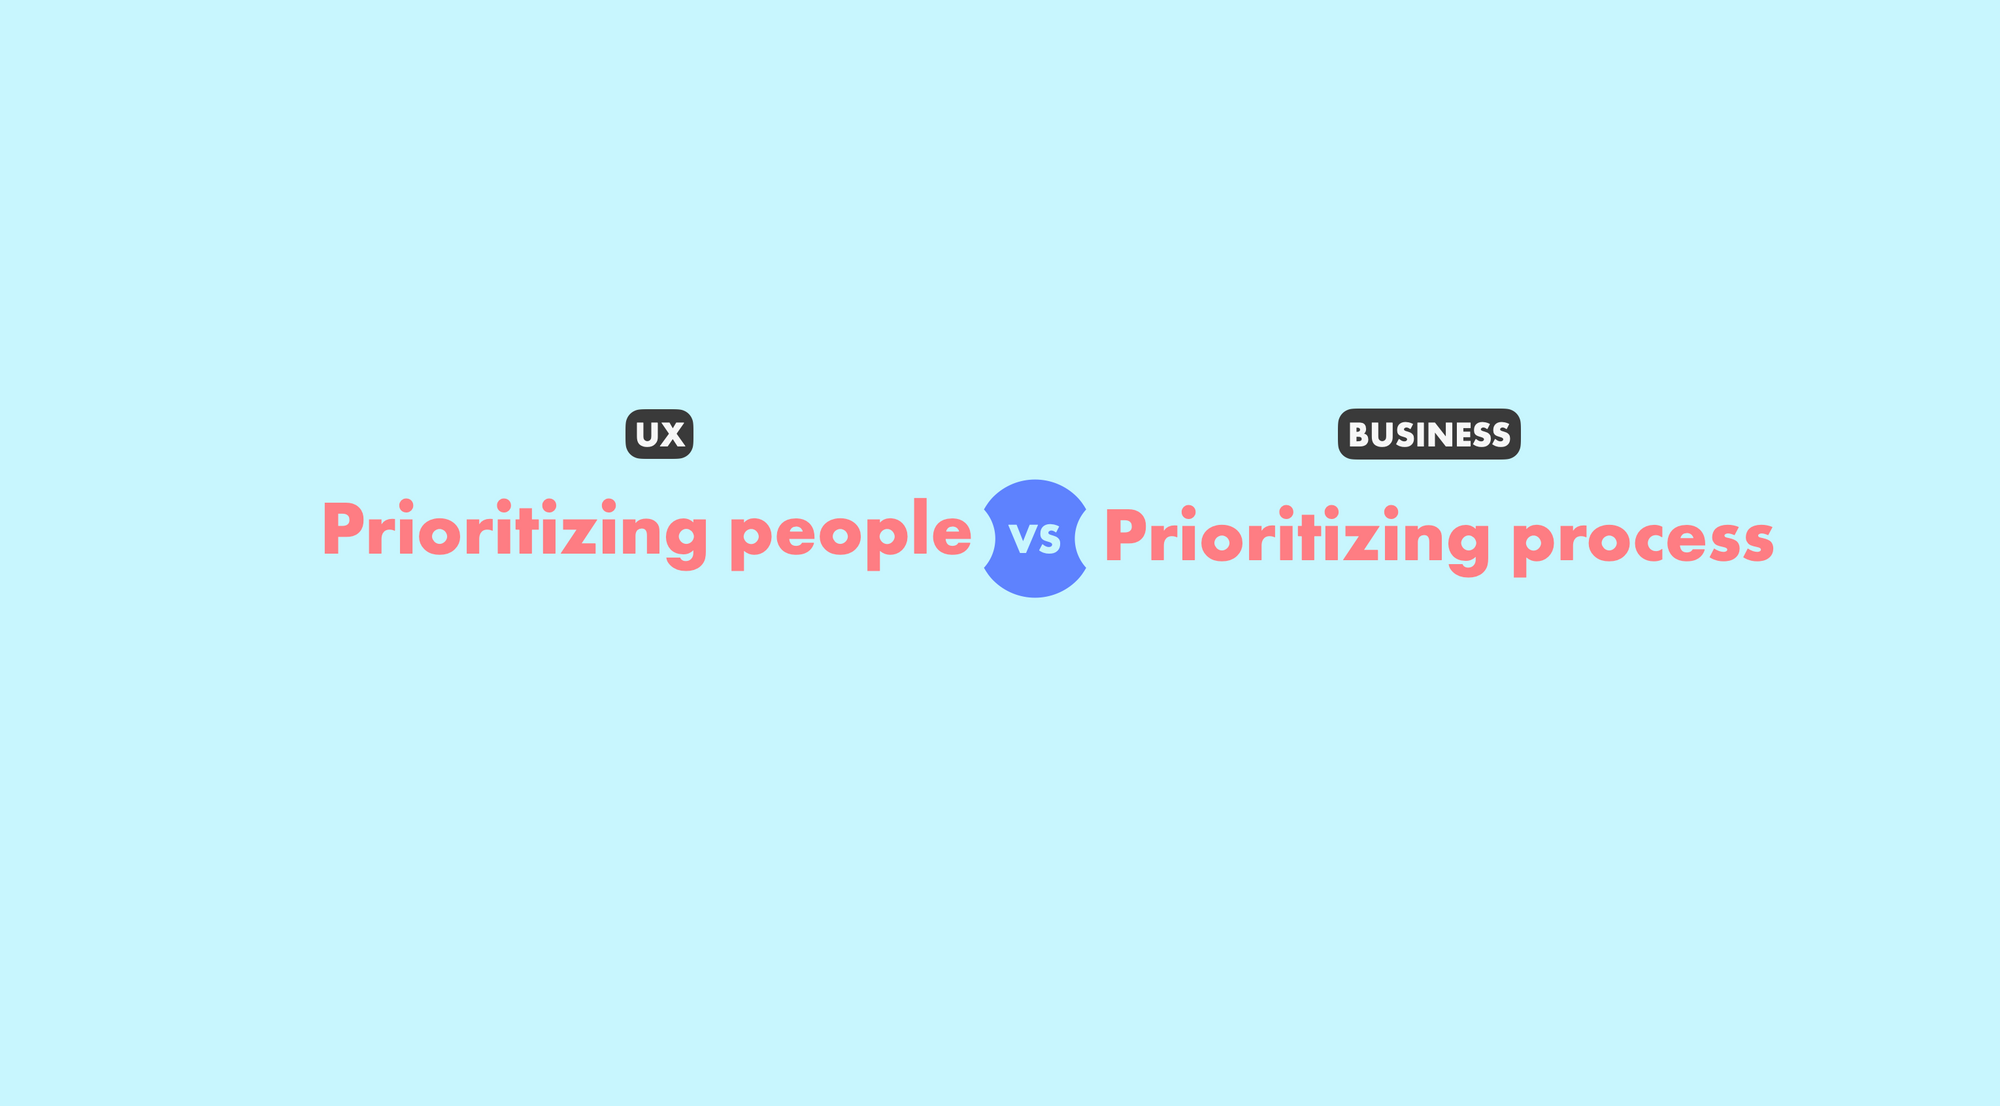 People (UX) over Process (Business) - Coral text on blue bg